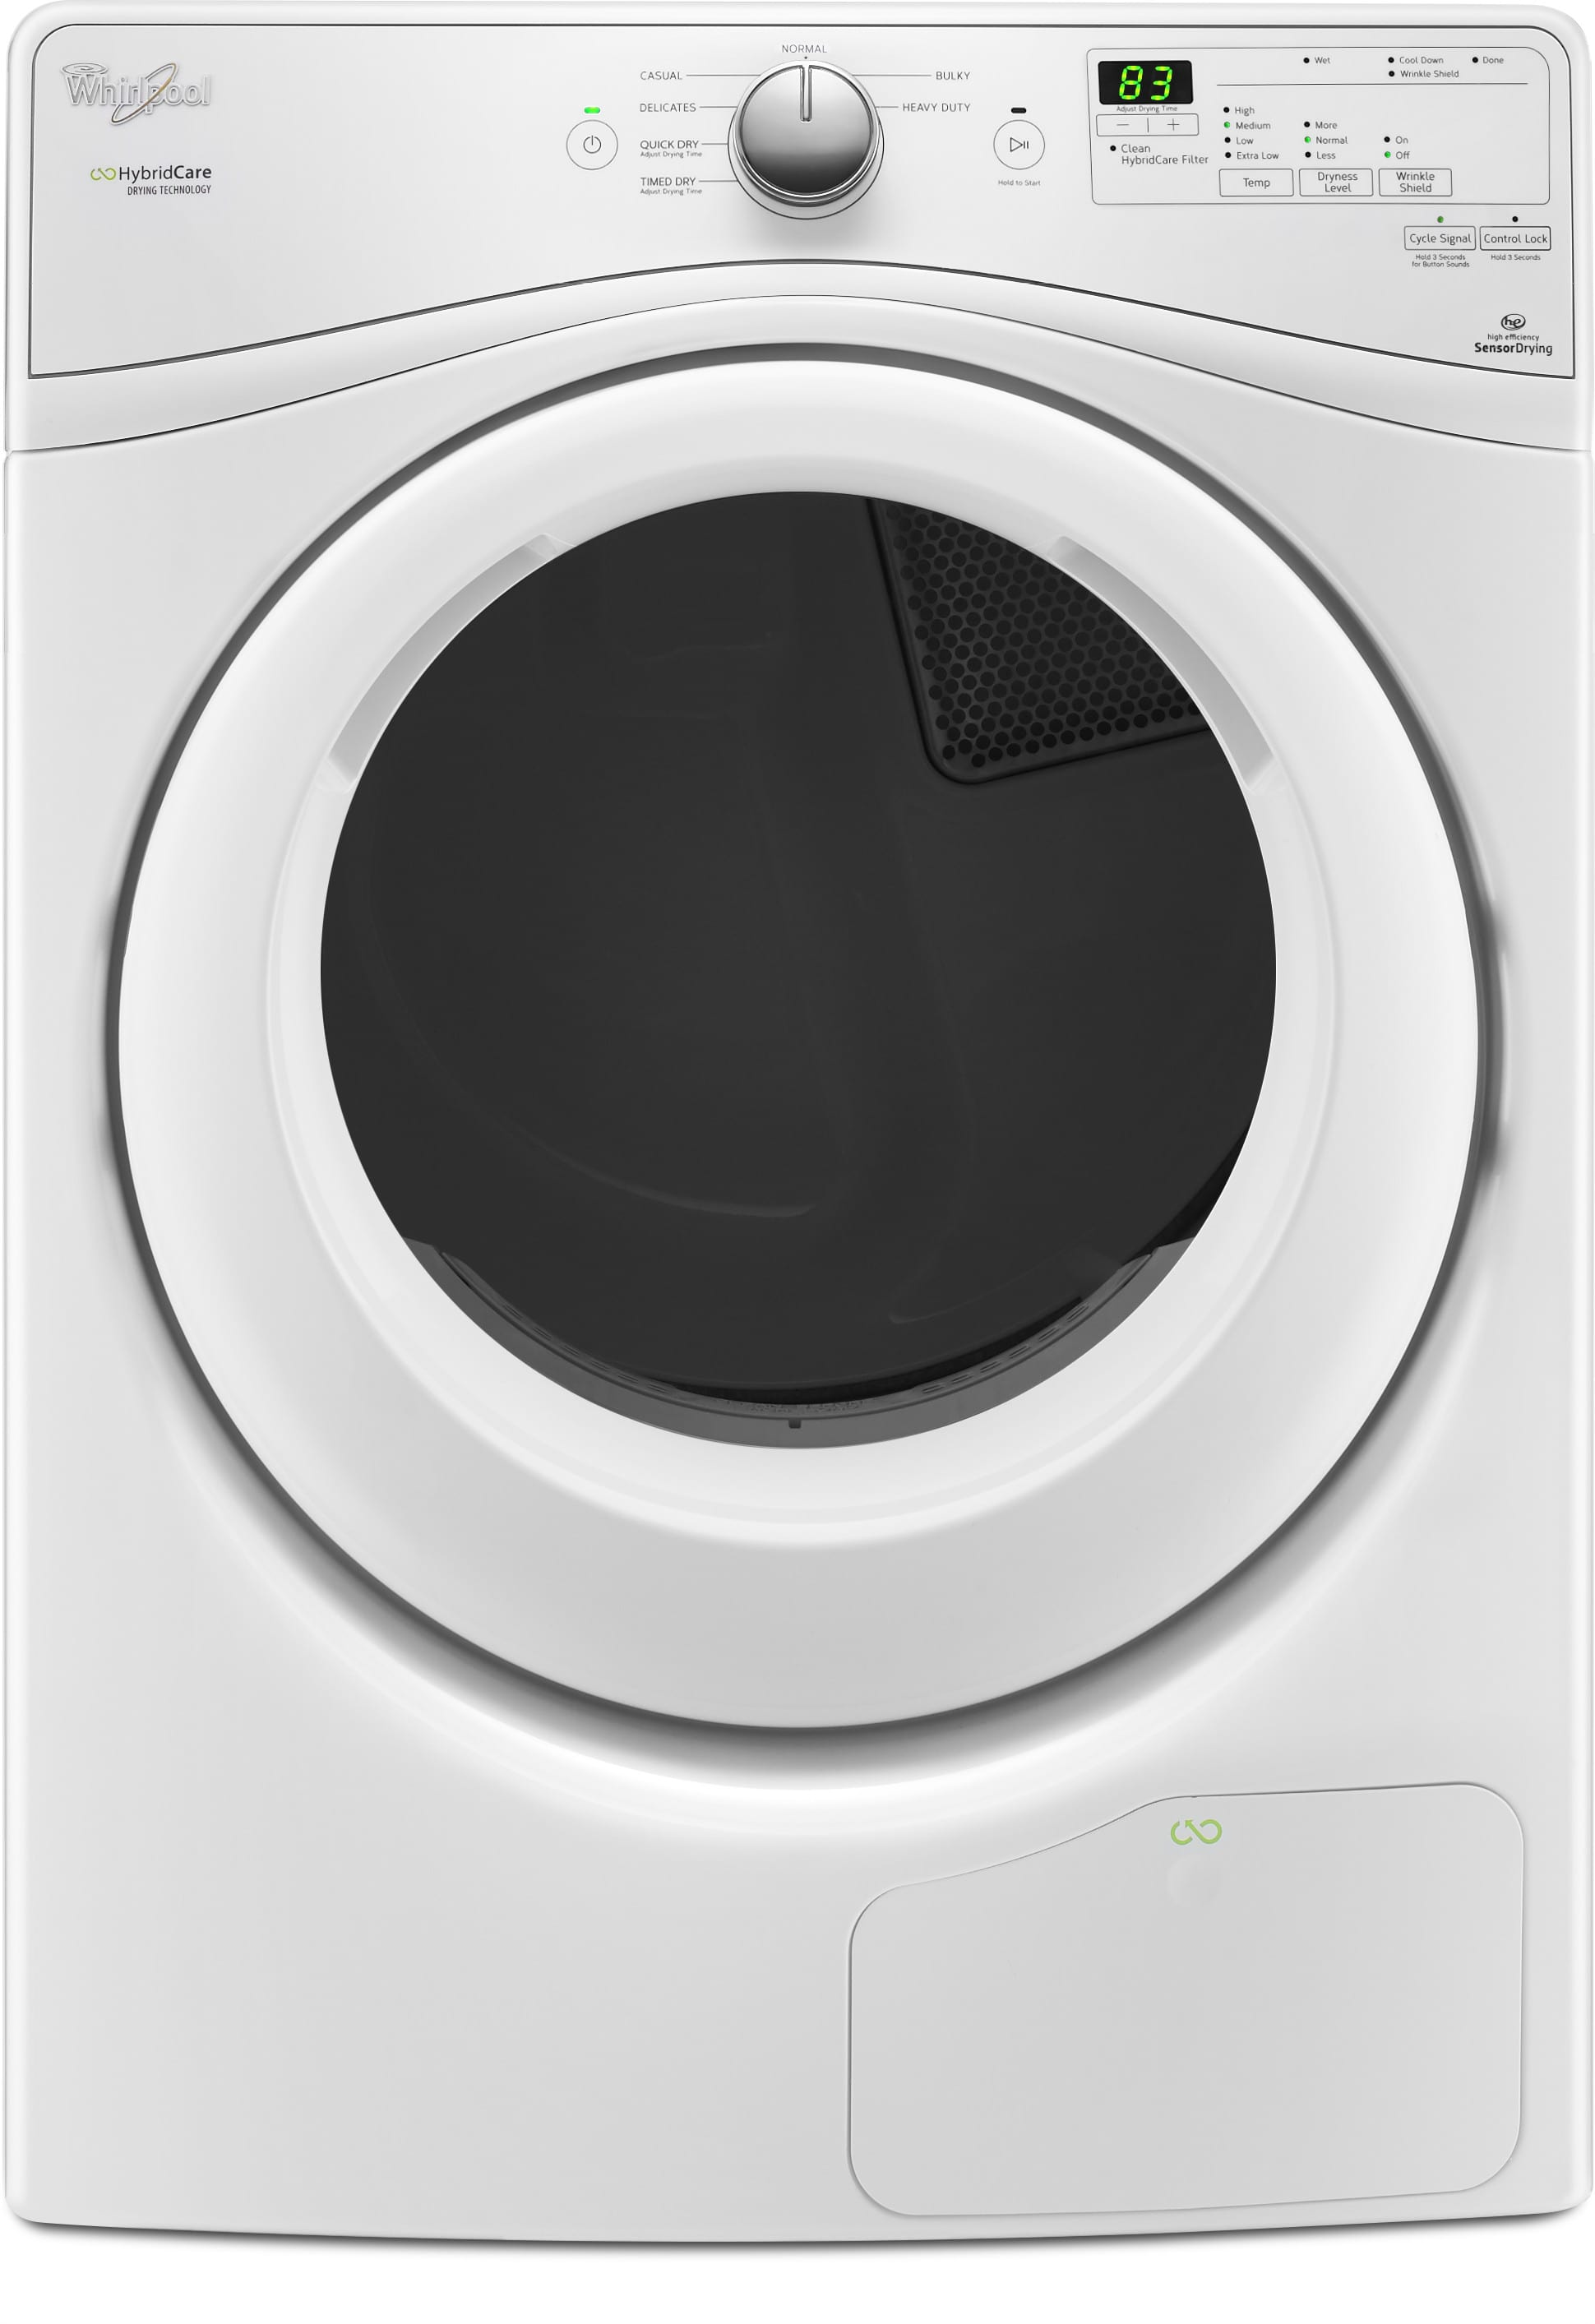 Miele stackable washer dryer ventless - Ventless Electric Dryer With Advanced Moisture Sensing Wrinkle Shield Plus Quick Dry Quad Baffles 7 Dry Cycles 4 Temperature Selections Ada Compliant